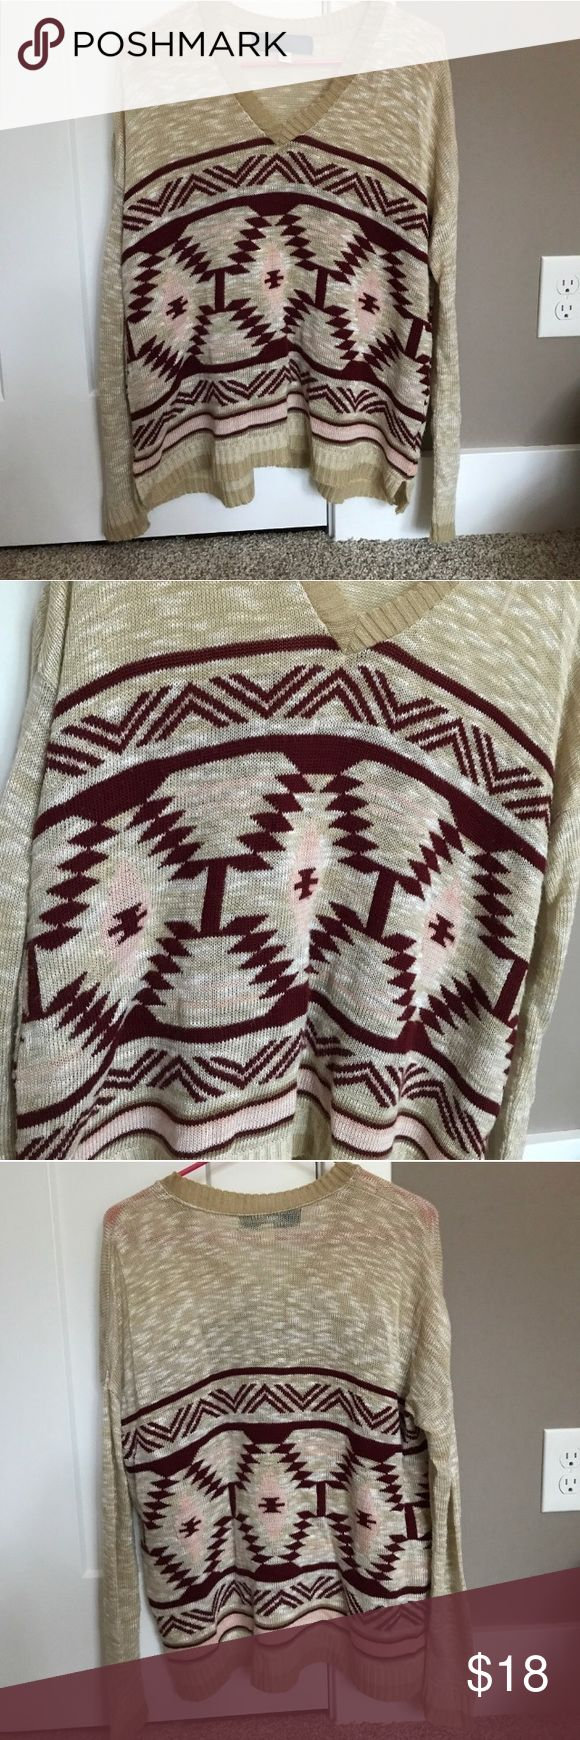 Francesca's Tribal Print Sweater Adorable tan sweater from Francesca's, gently worn. Soft and comfy fit. Francesca's Collections Sweaters